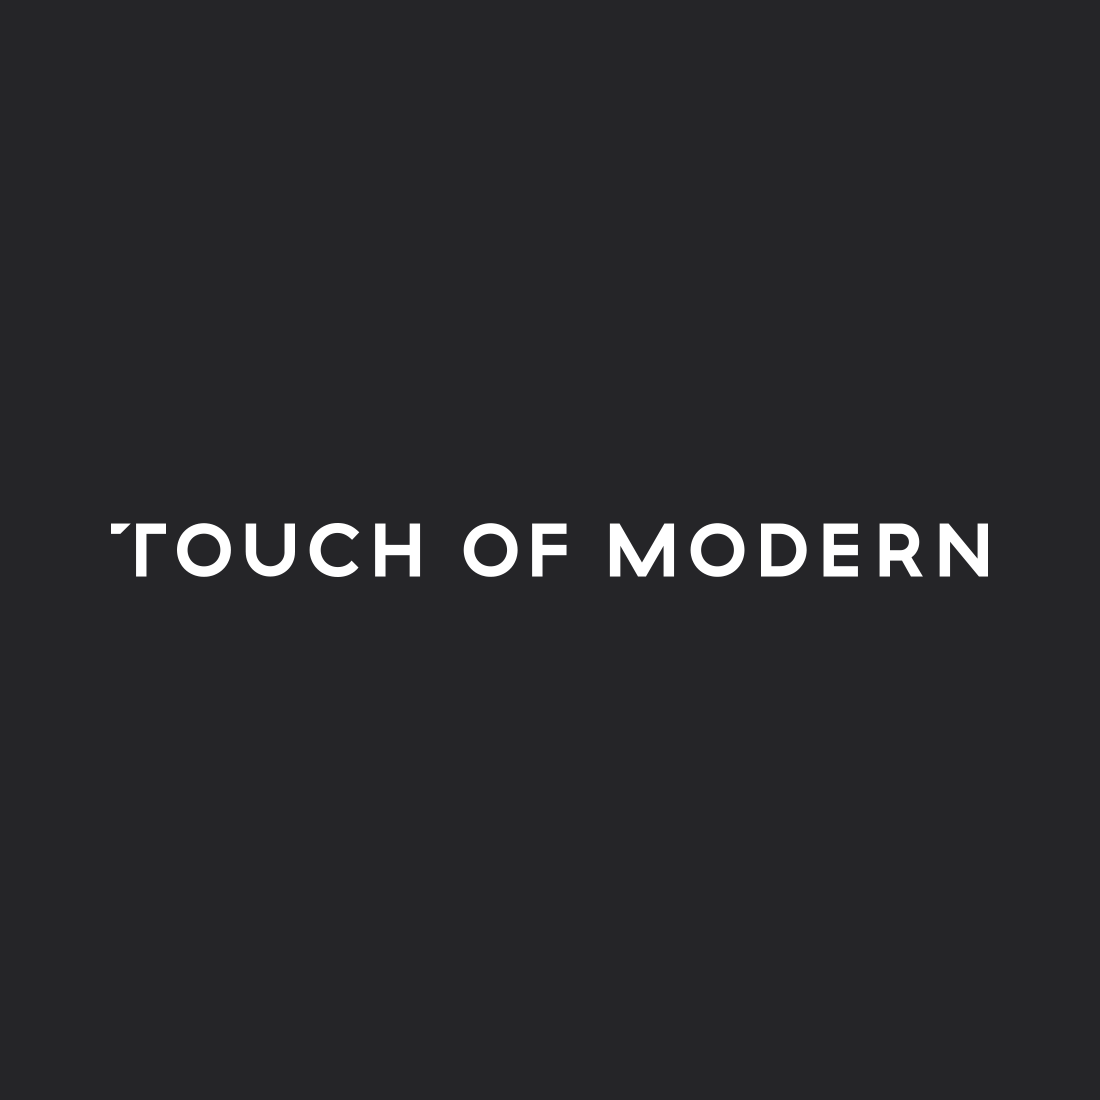 Up to 70% Off at TouchofModern including Dewberry. Ends November 13th 12PM PST